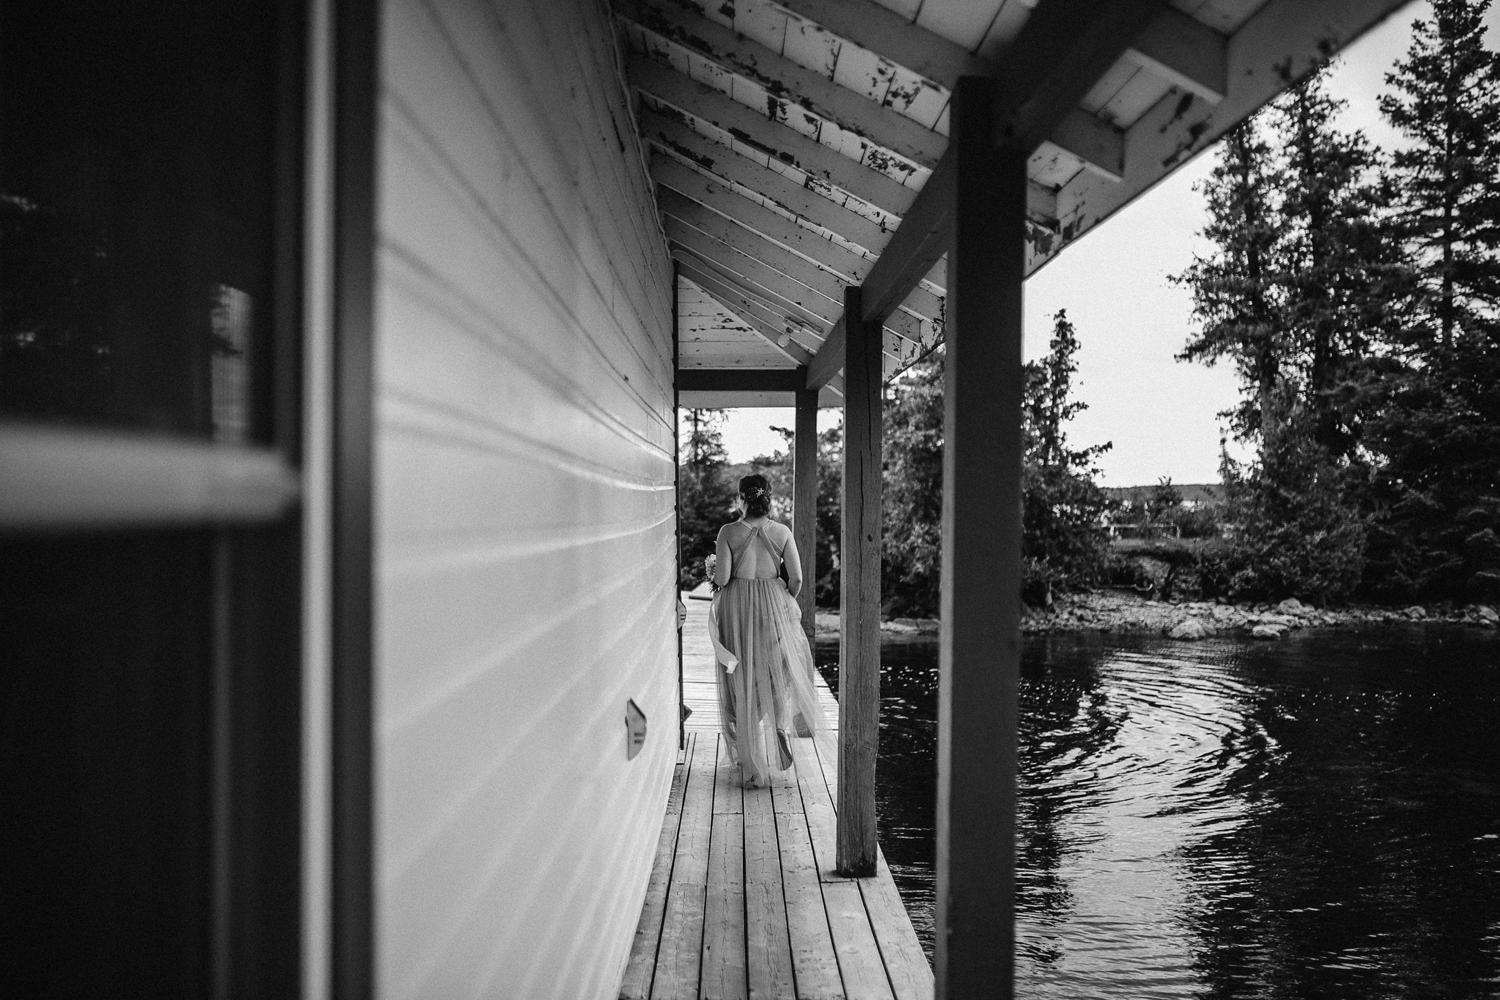 kerry ford photography - small intimate backyard rideau lake island wedding perth ontario-112.jpg